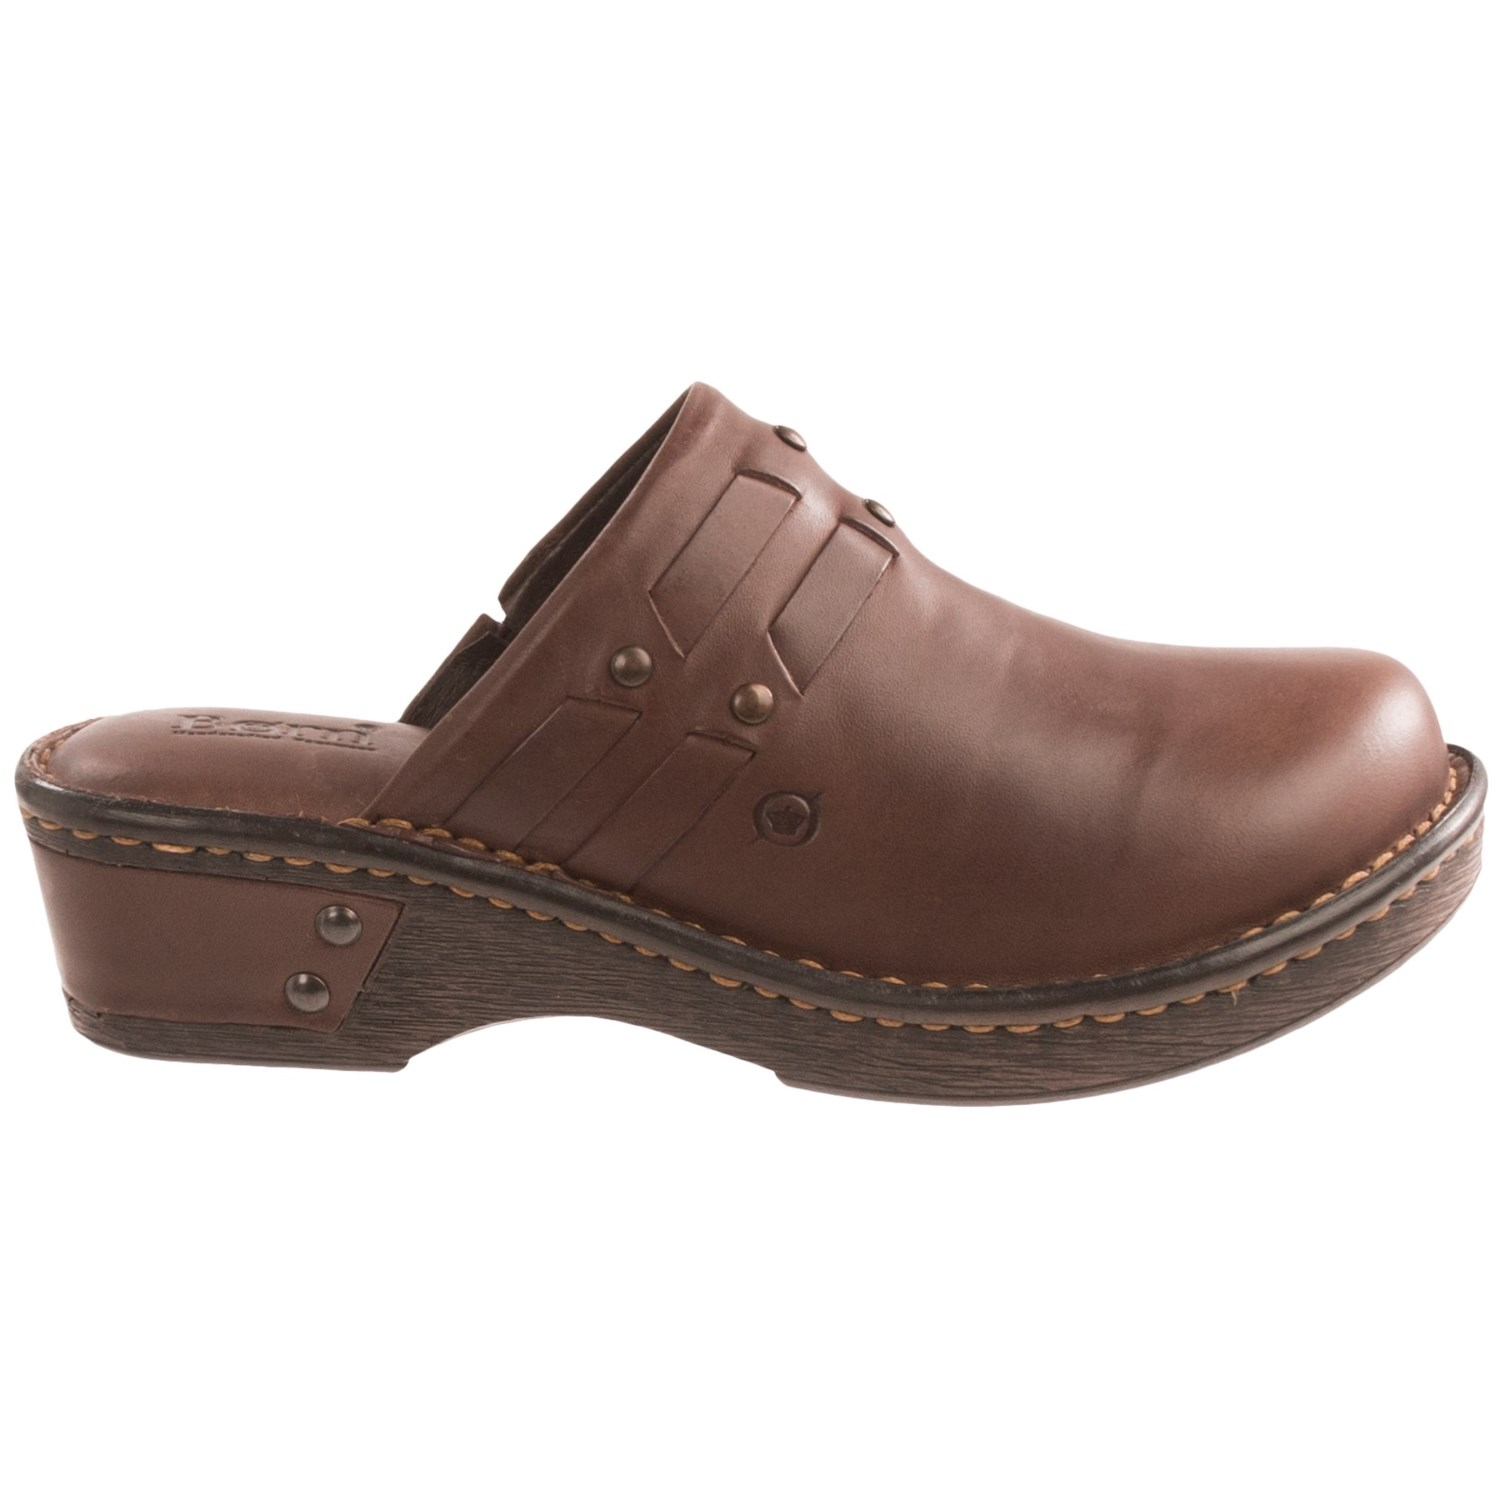 The leather traveltime clogs I ordered are fabulous. Fit just perfect in the wide width which I have to have. I loved them so much I ordered them in Navy and they also are great. Wish that they came in white leather and also a dark brown. Would recommend them everyone. They get a five star rating from me%.